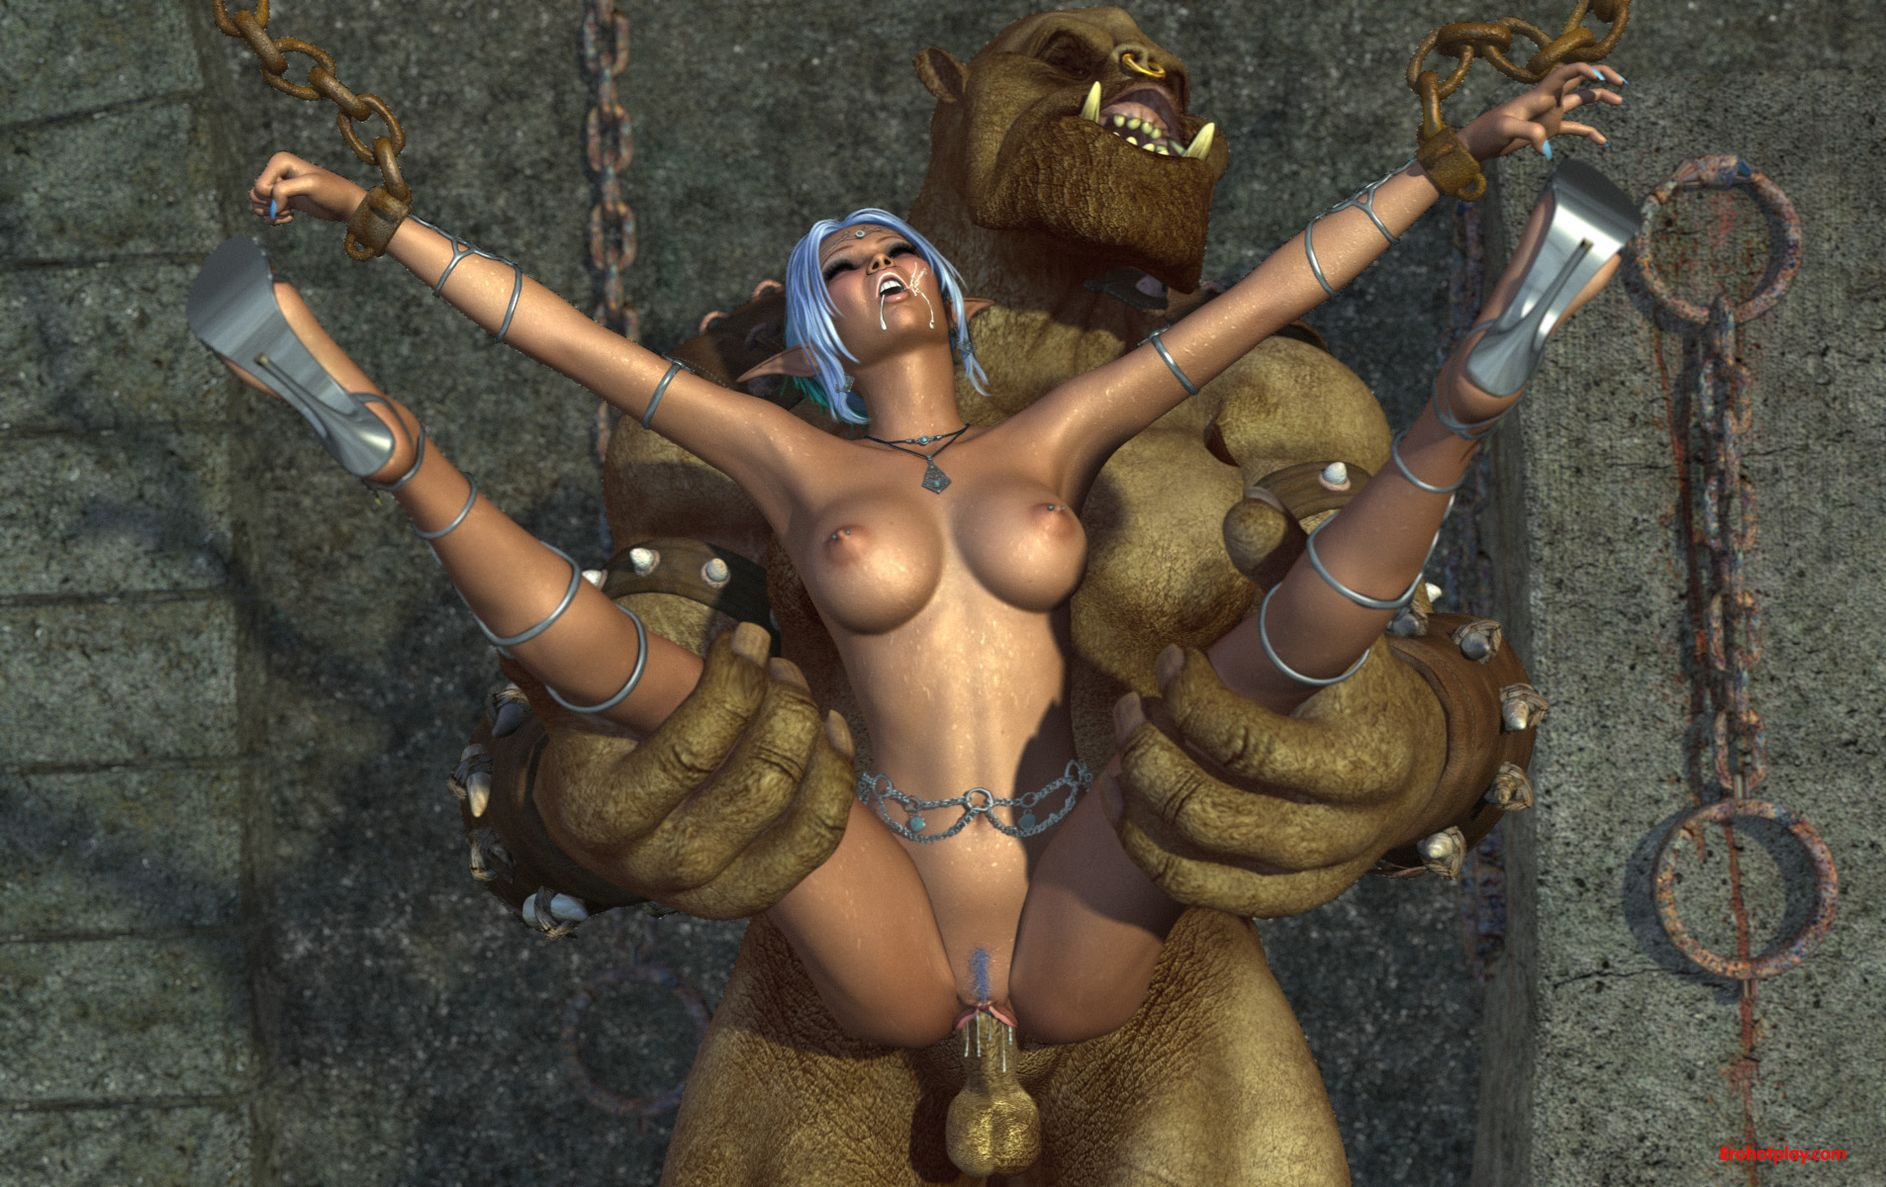 Elf ogre fantasy porn cartoon clip